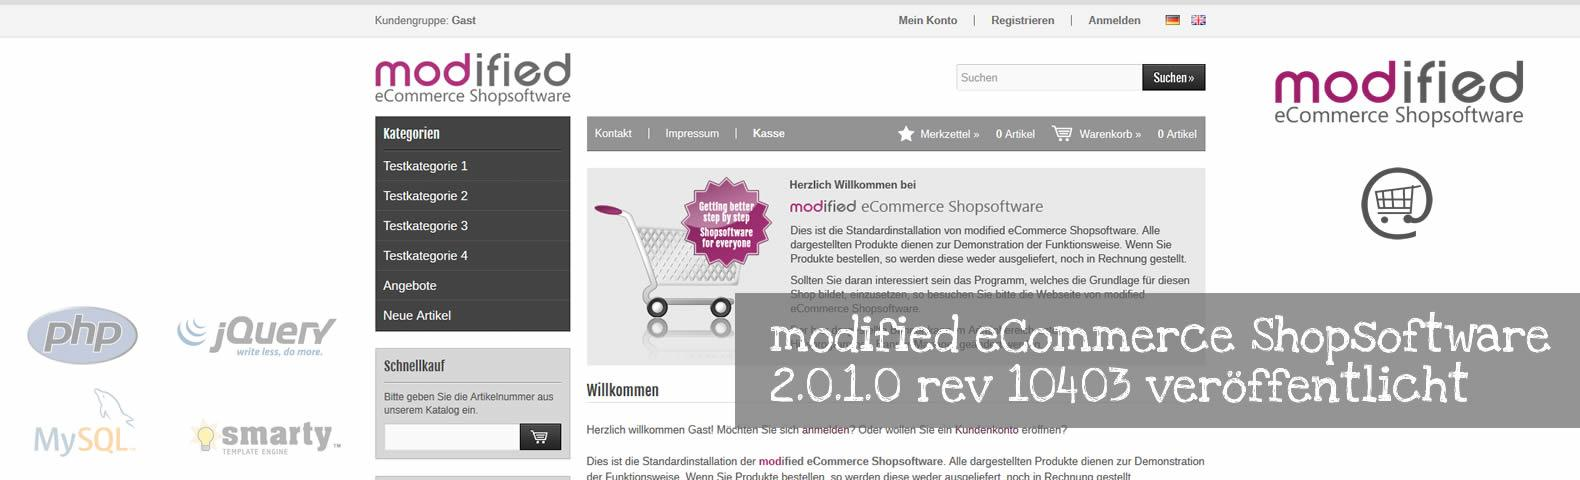 modified eCommerce Shopsoftware 2.0.1.0 rev 10403 veröffentlicht